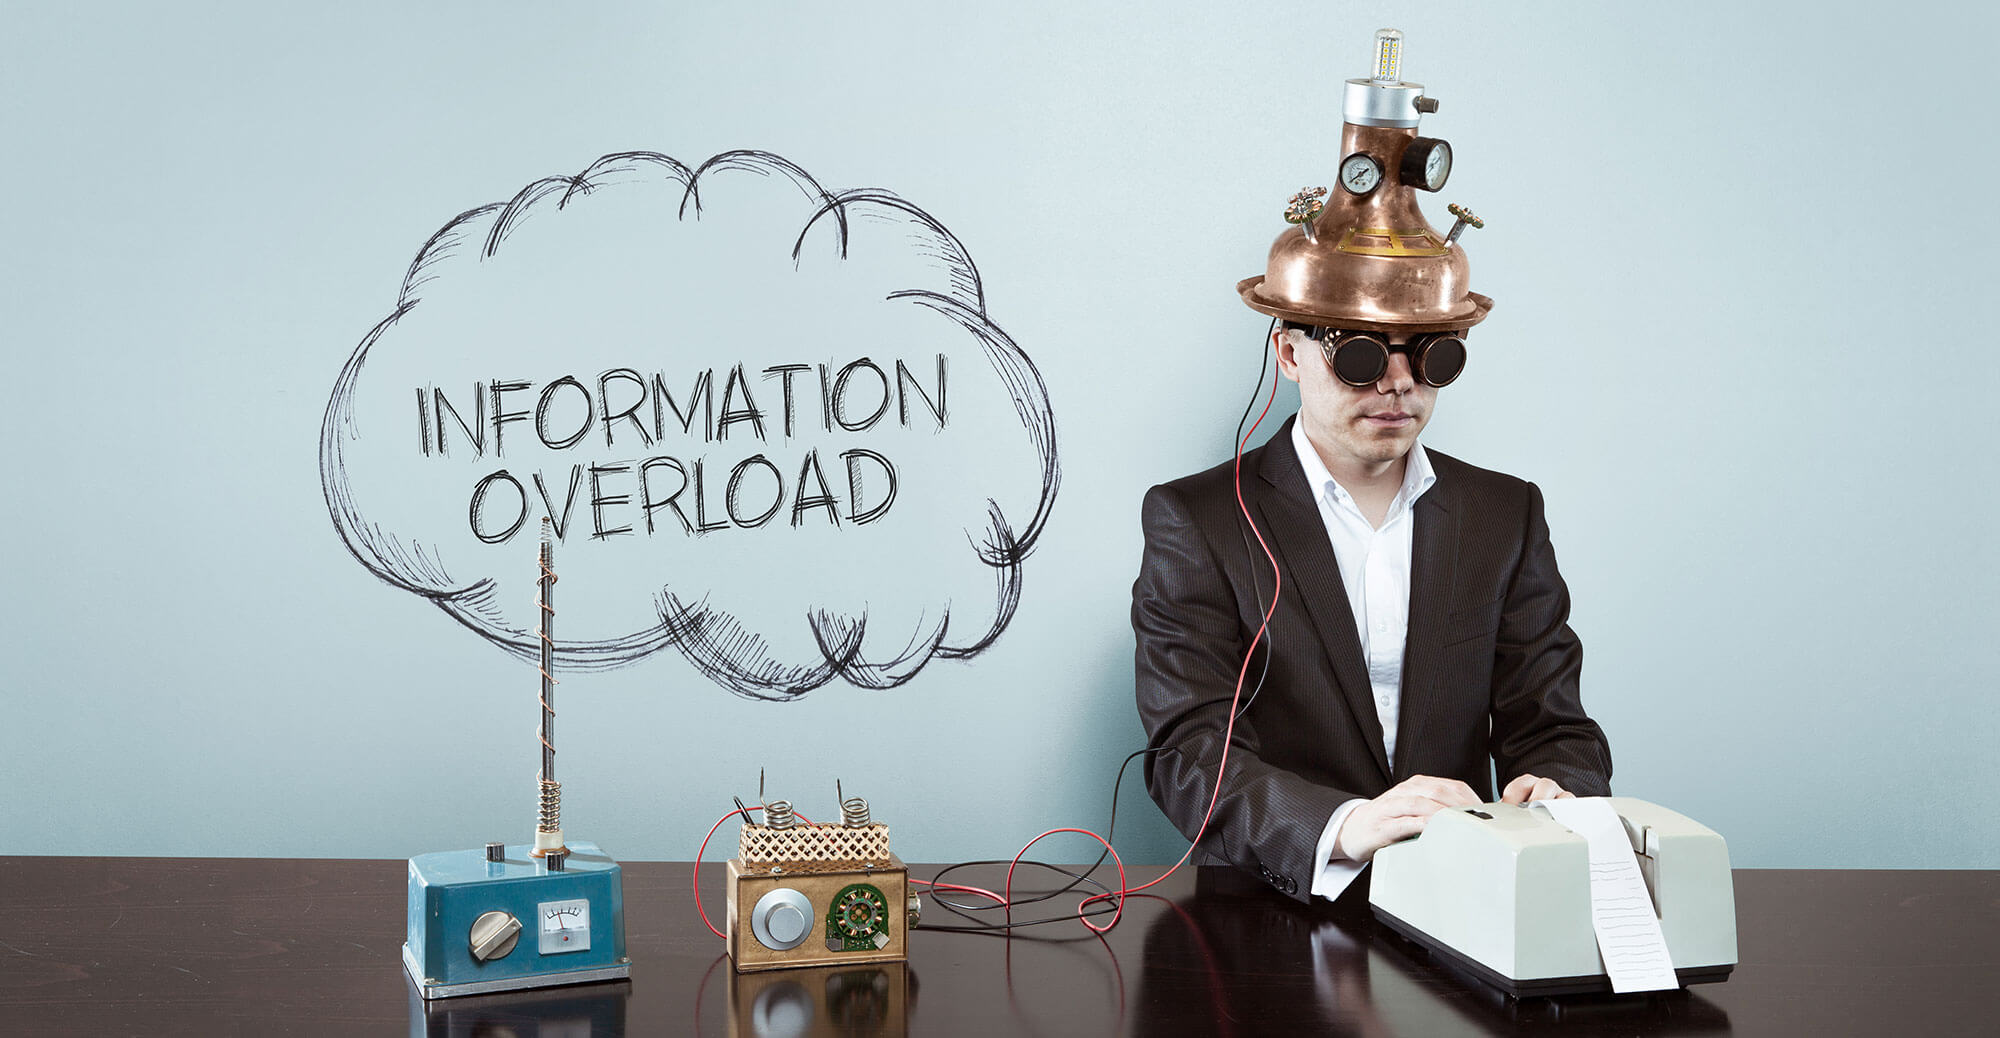 Information Overload: Which Form of Communication Should You Choose